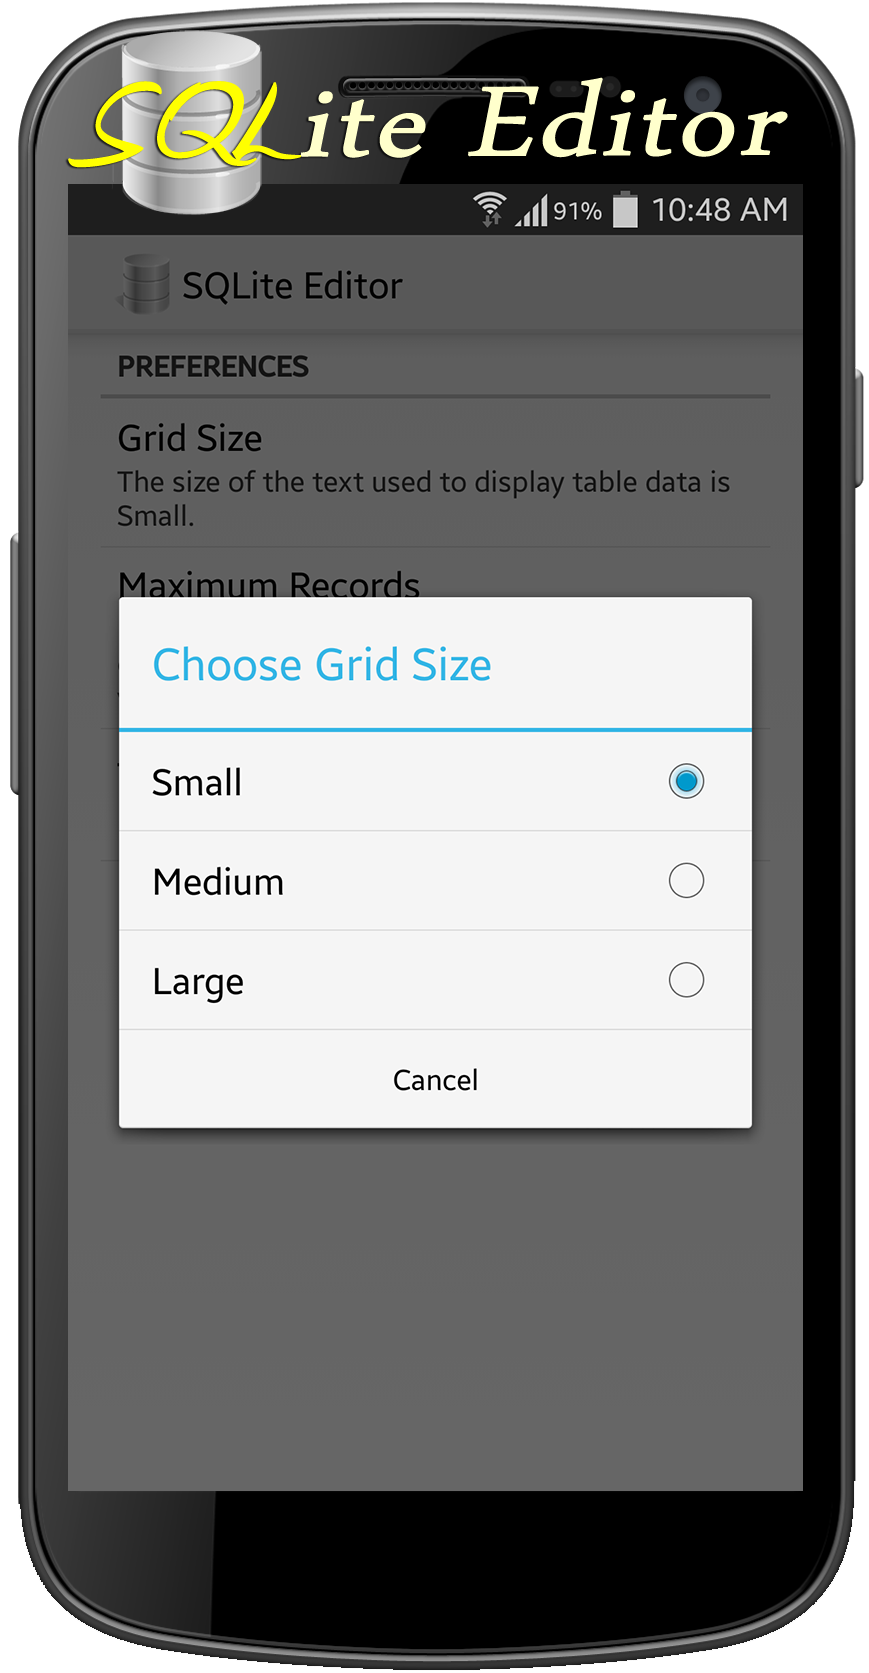 SQLite Editor On any Android device, go into settings